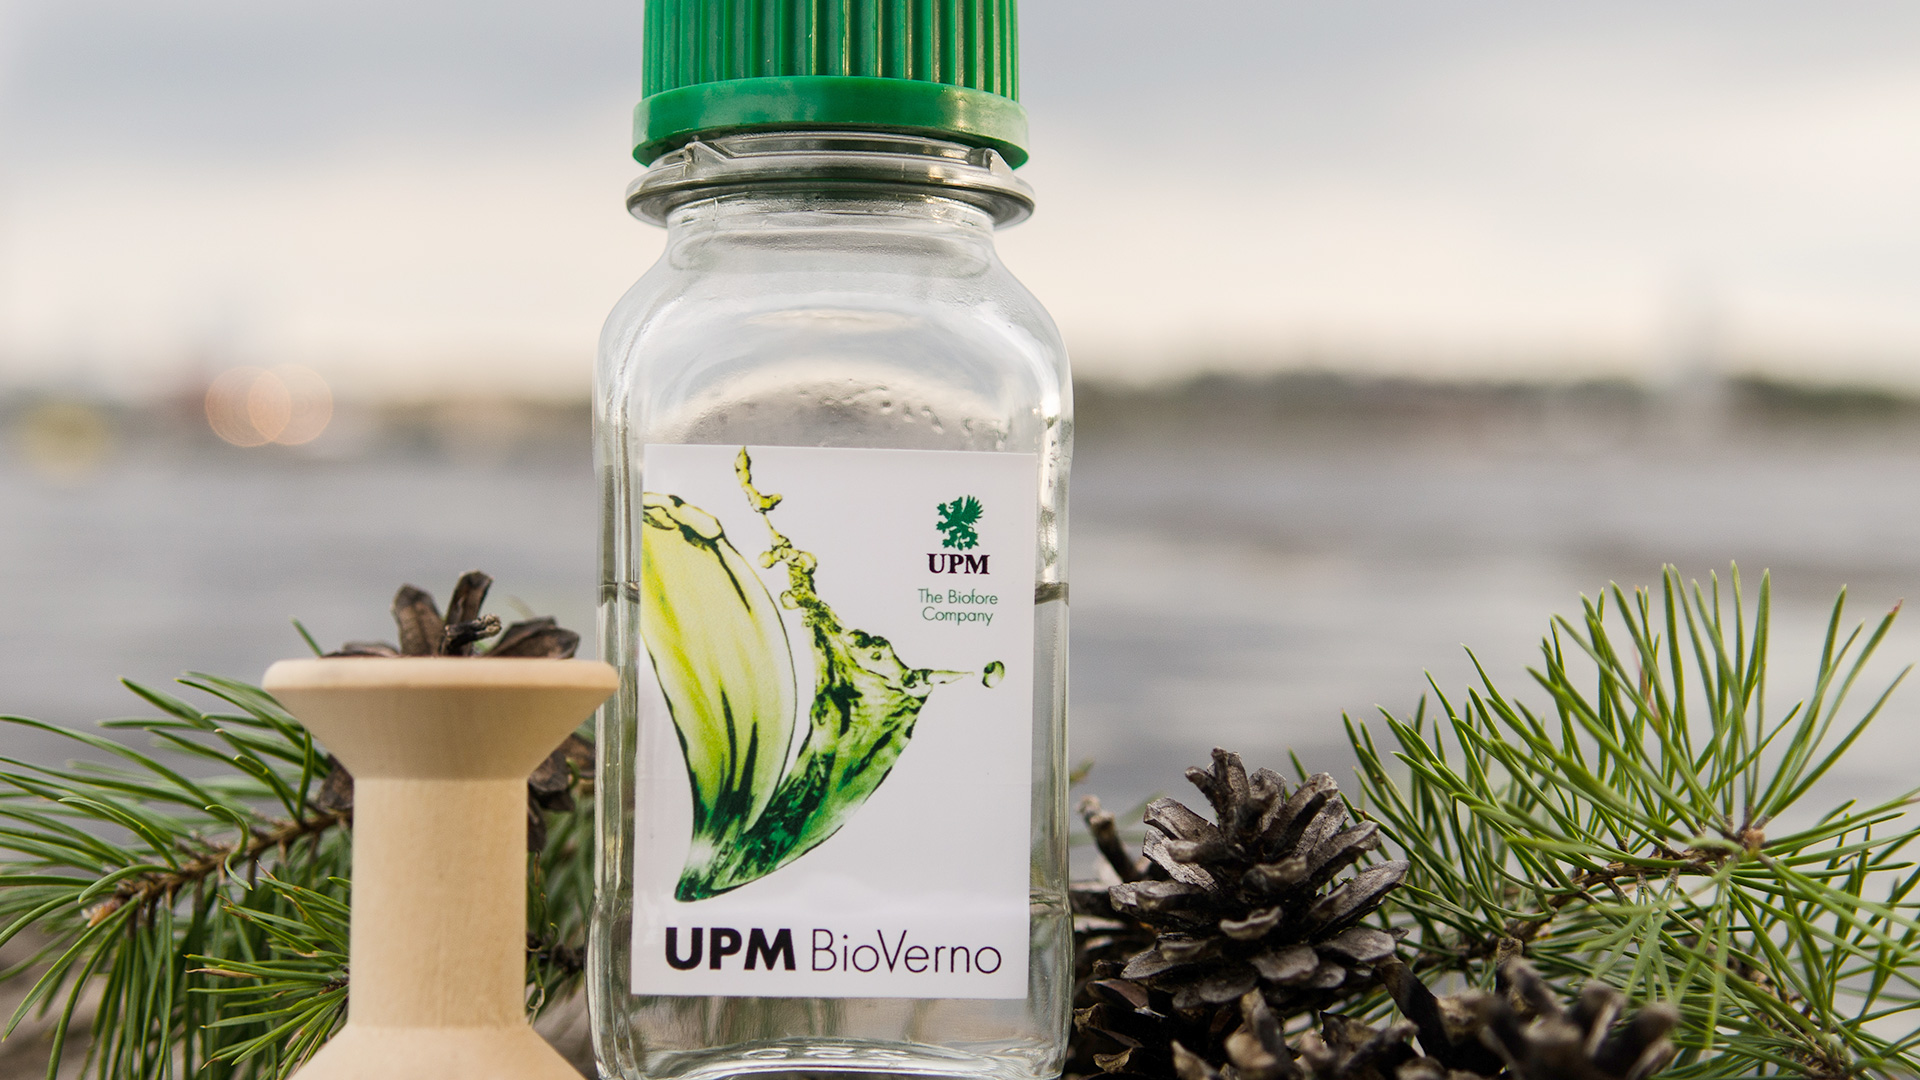 upm-bioverno-bottle-and-spool.jpg